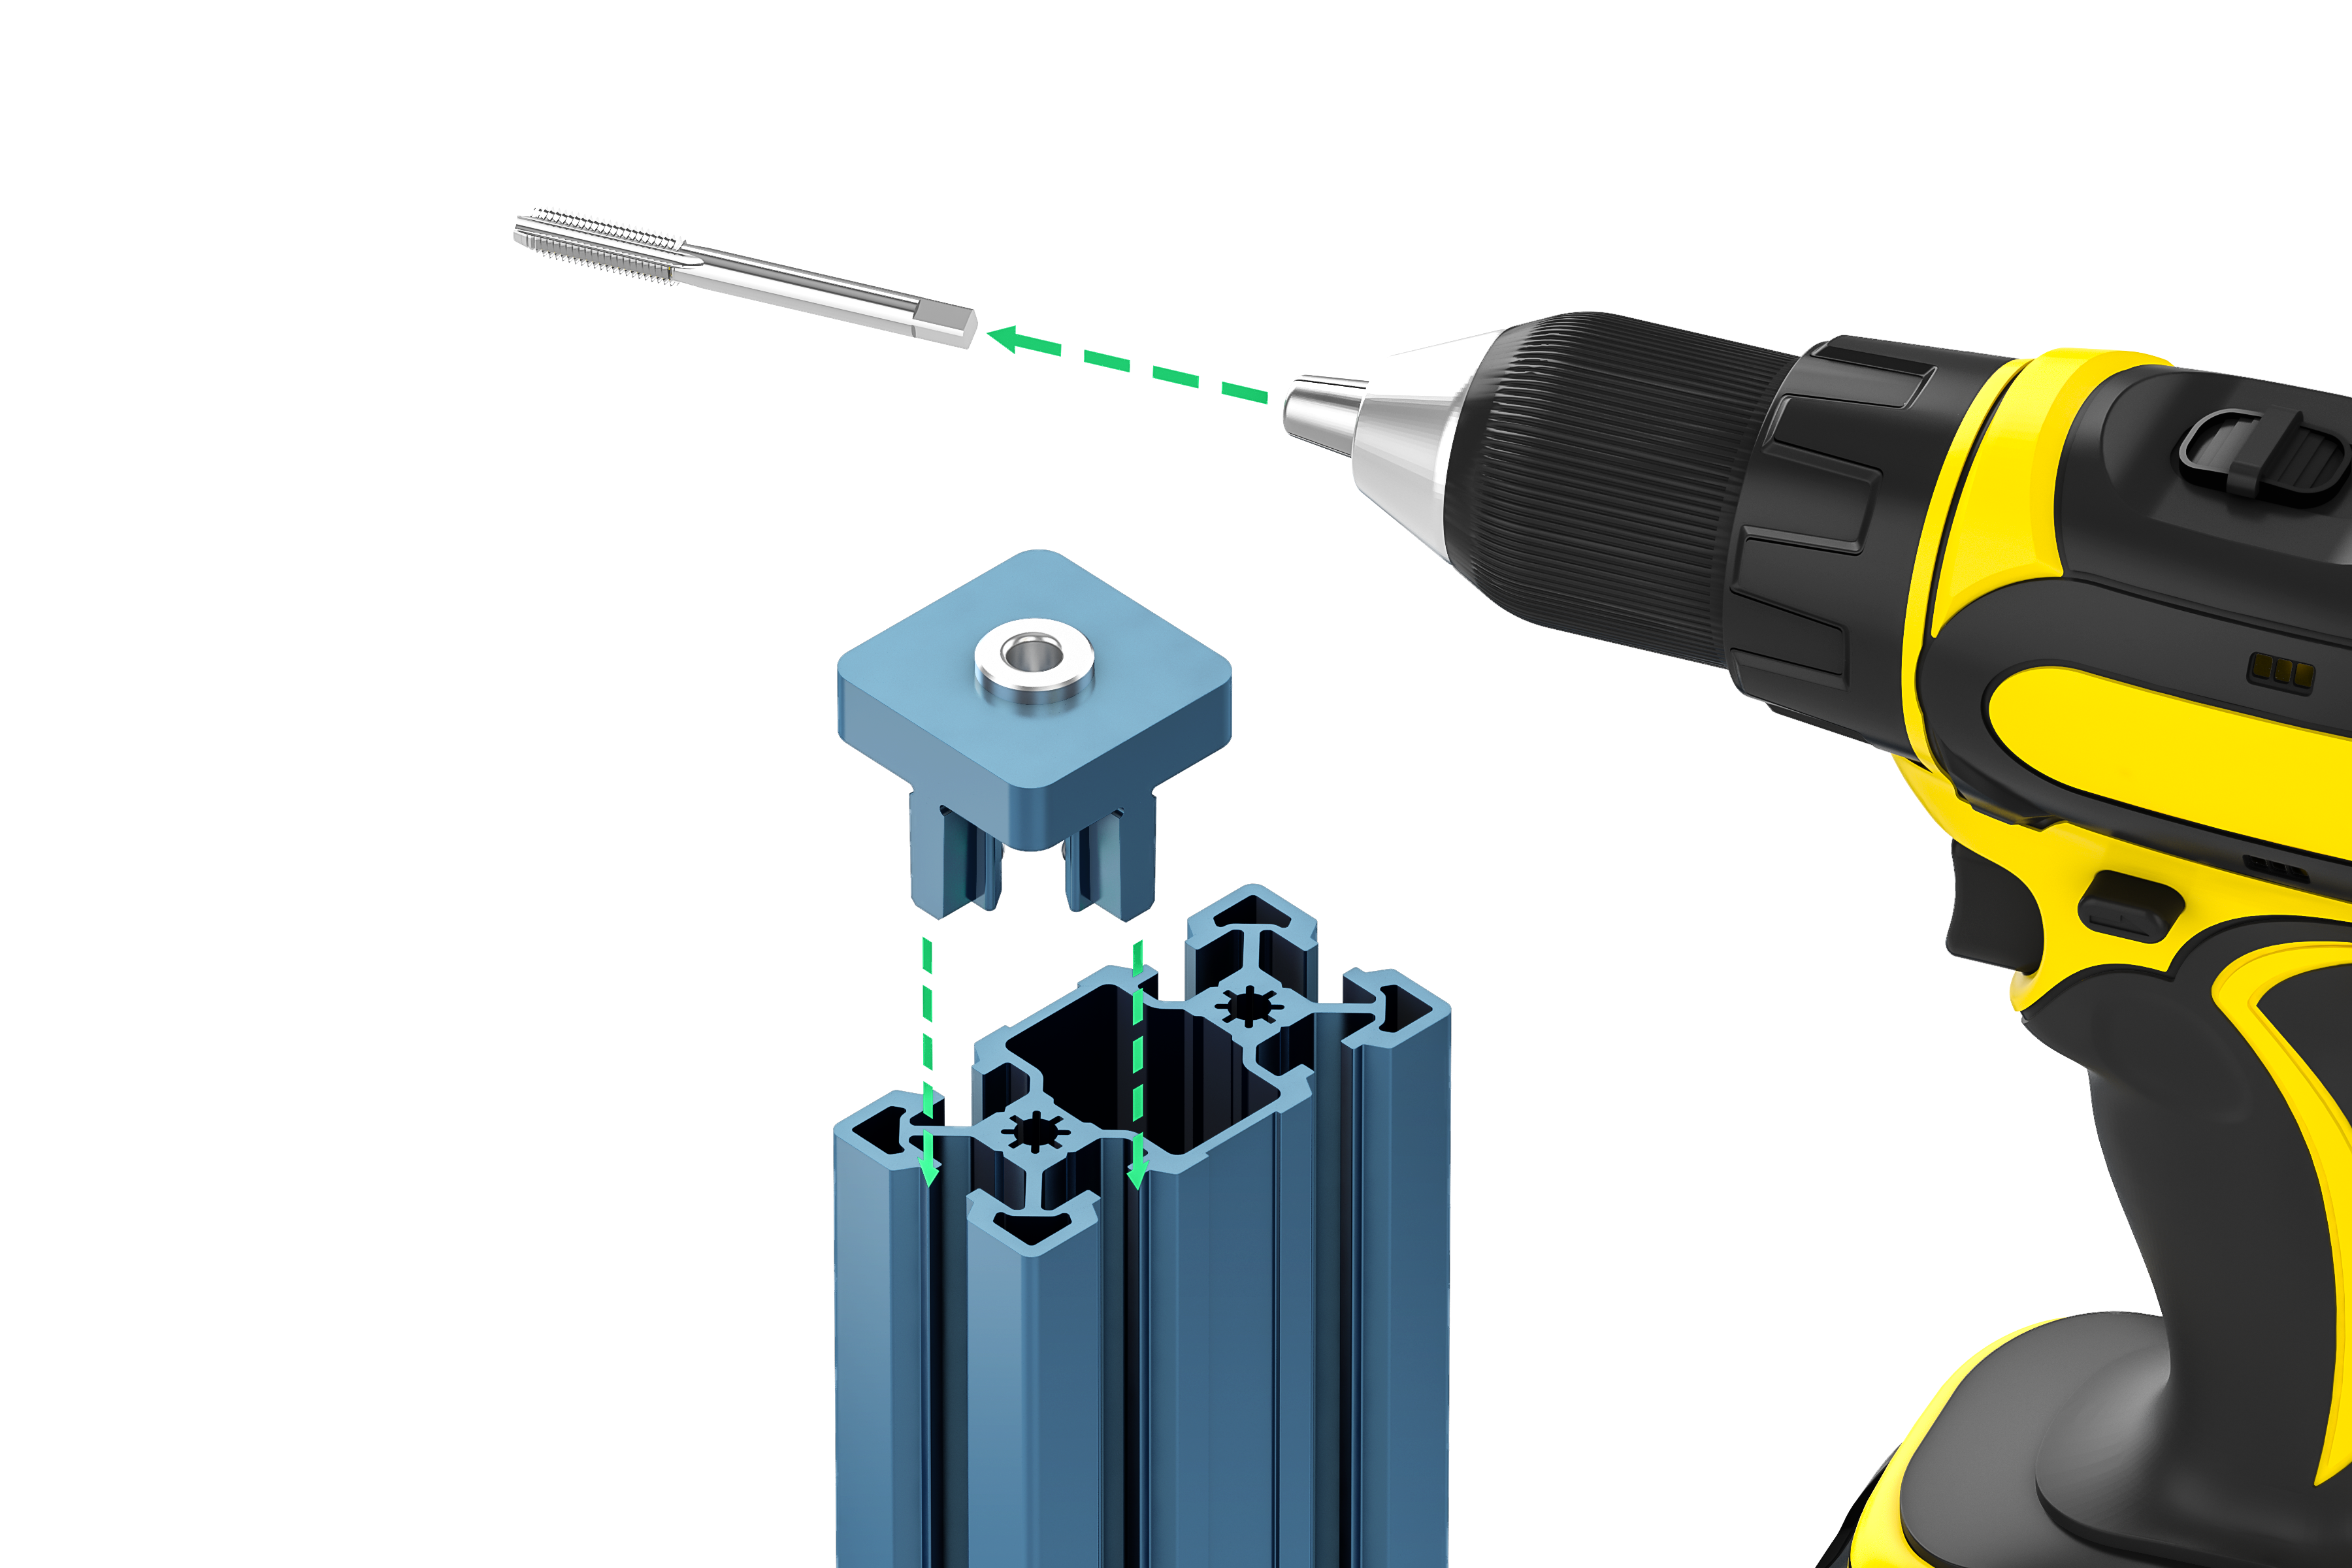 Tap and tool install with drill